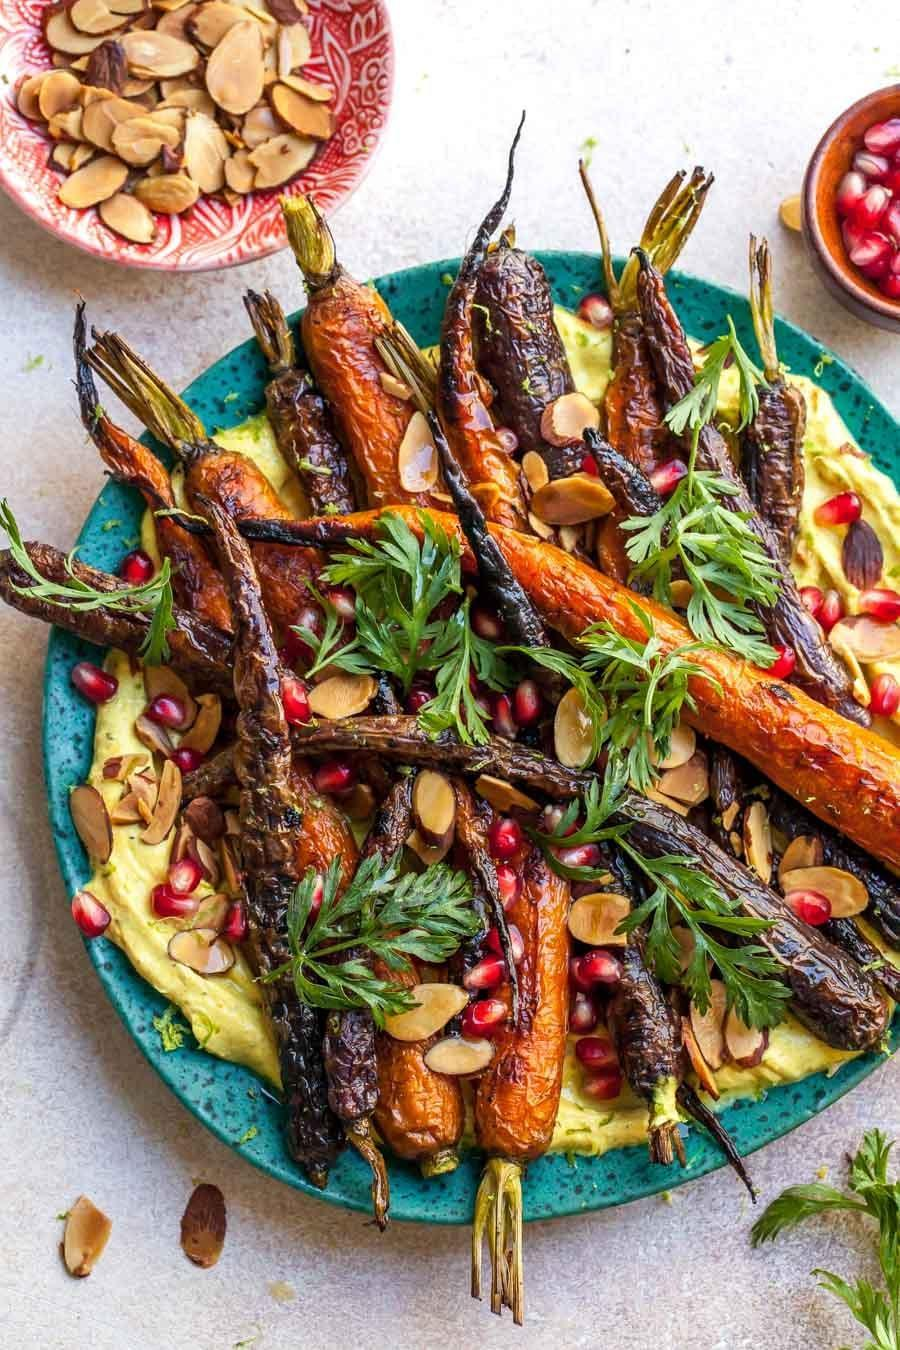 "<p>This simple side dish requires only five ingredients and is vegetarian. While the original recipe serves six, you can cut the recipe in thirds to serve two. </p> <p><strong>Get the recipe:</strong> <a href=""http://dishingouthealth.com/roasted-carrots-with-curried-yogurt-5-ingredients/"" class=""link rapid-noclick-resp"" rel=""nofollow noopener"" target=""_blank"" data-ylk=""slk:roasted carrots with curried yogurt"">roasted carrots with curried yogurt</a></p>"